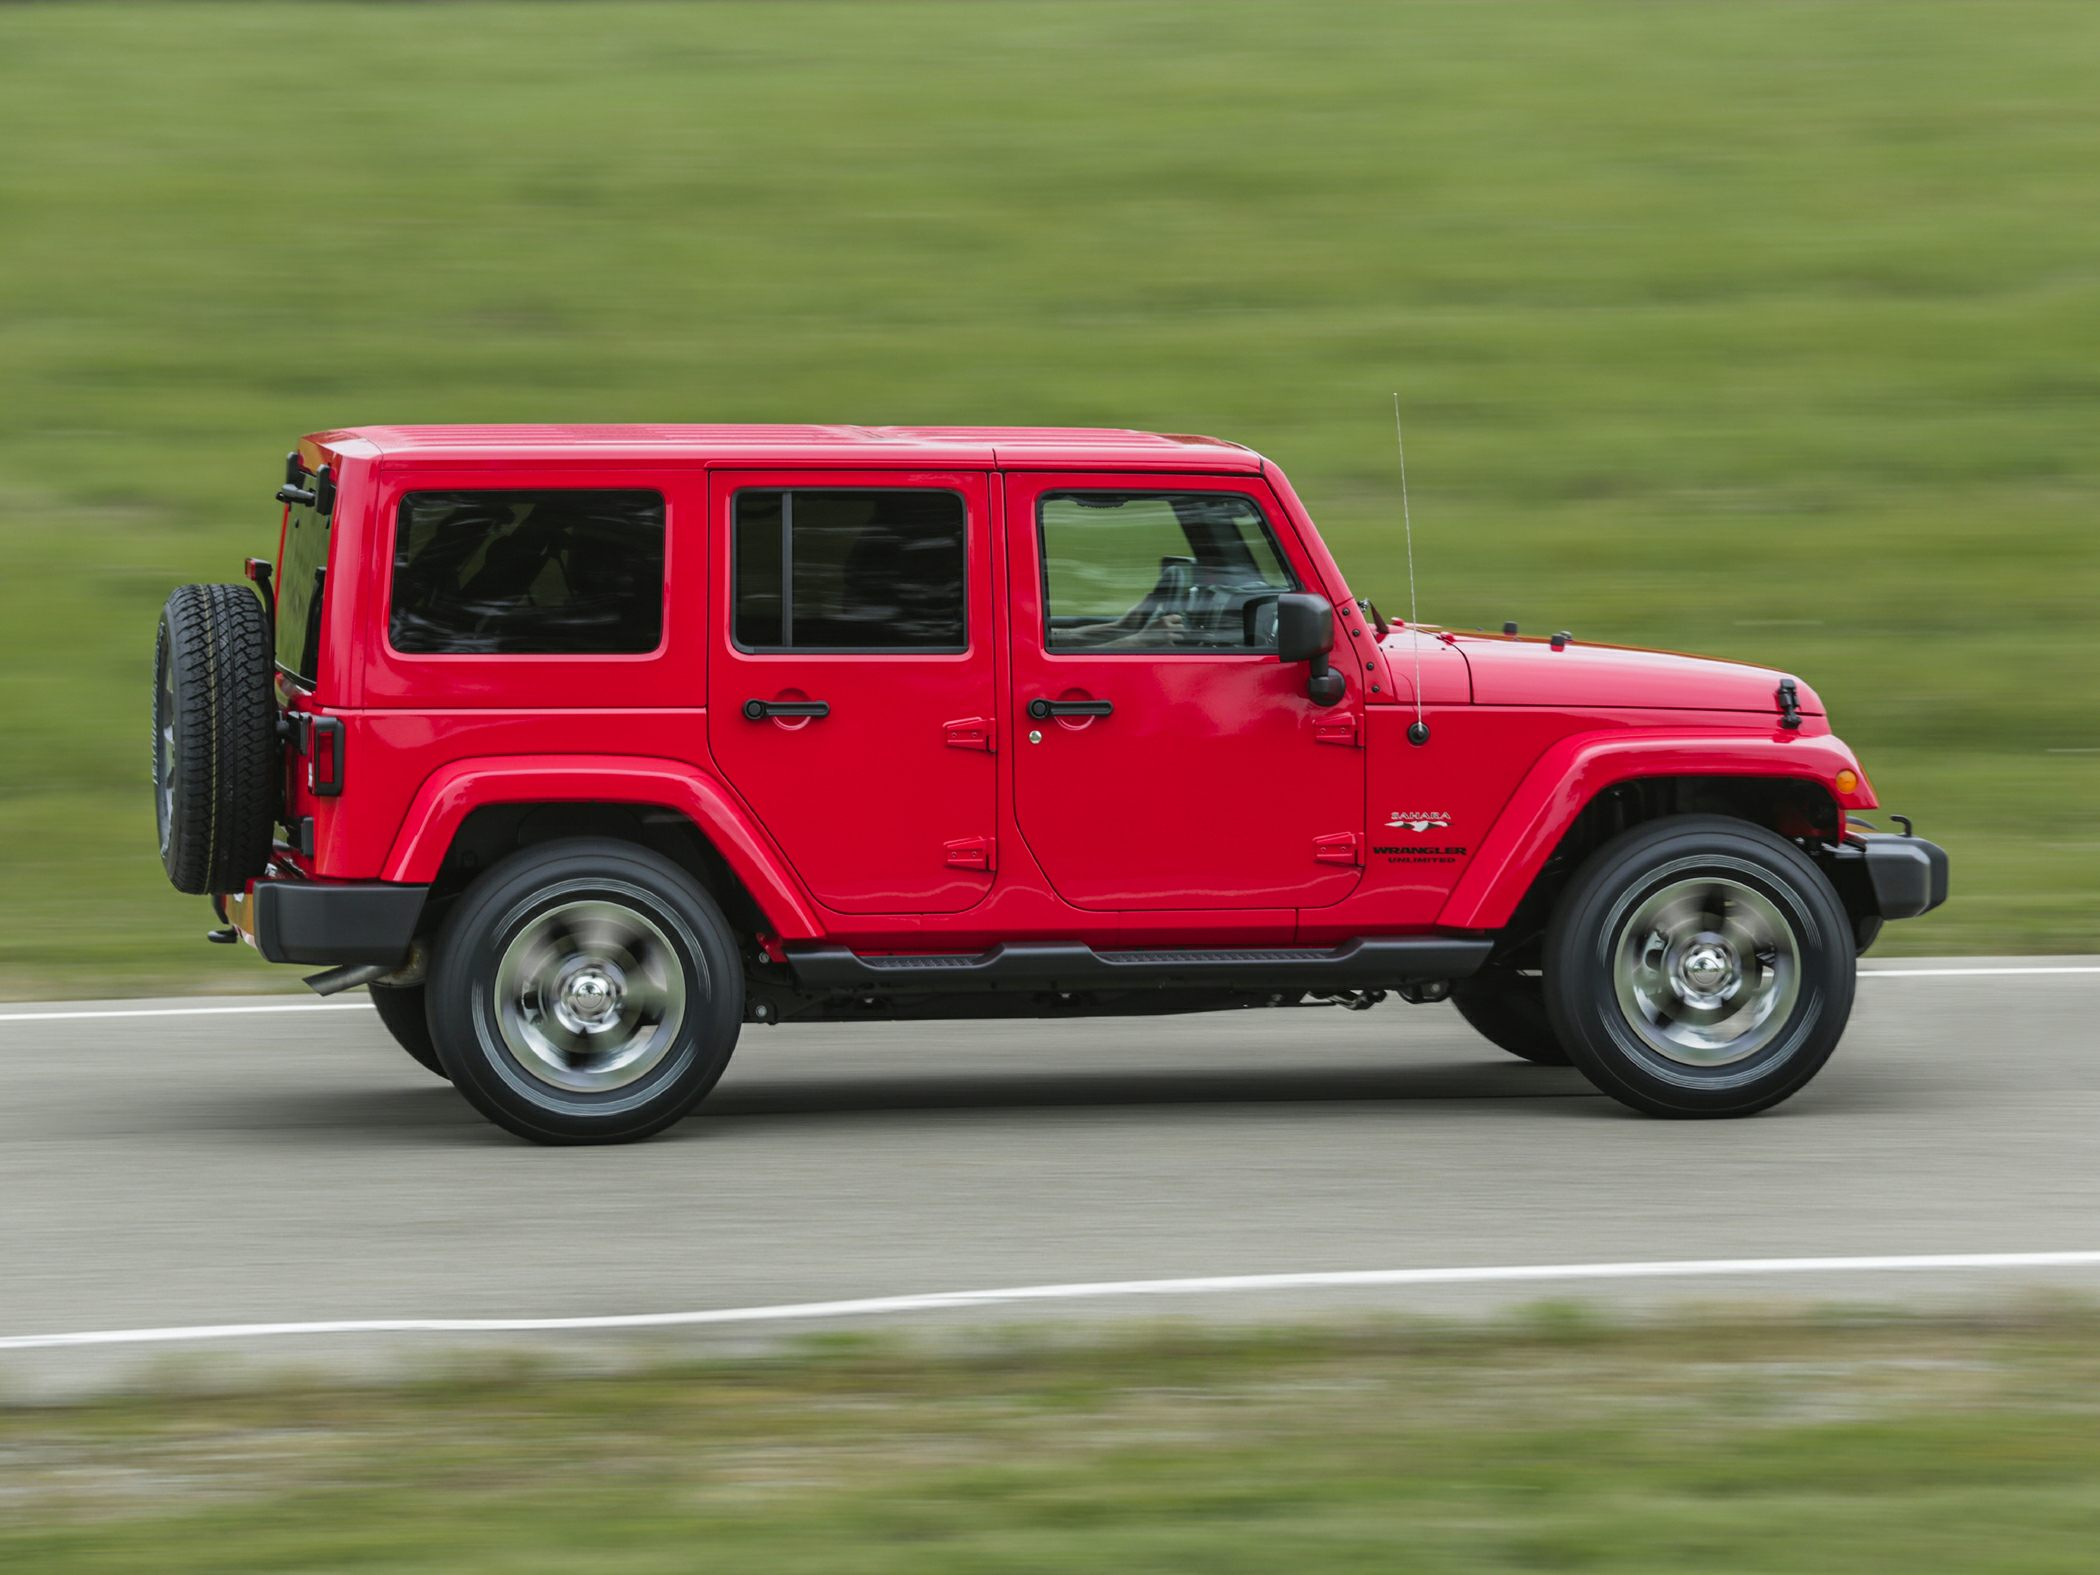 2018 Jeep Wrangler Jk Unlimited For Sale In Thunder Bay Lakehead Parts Book Sport